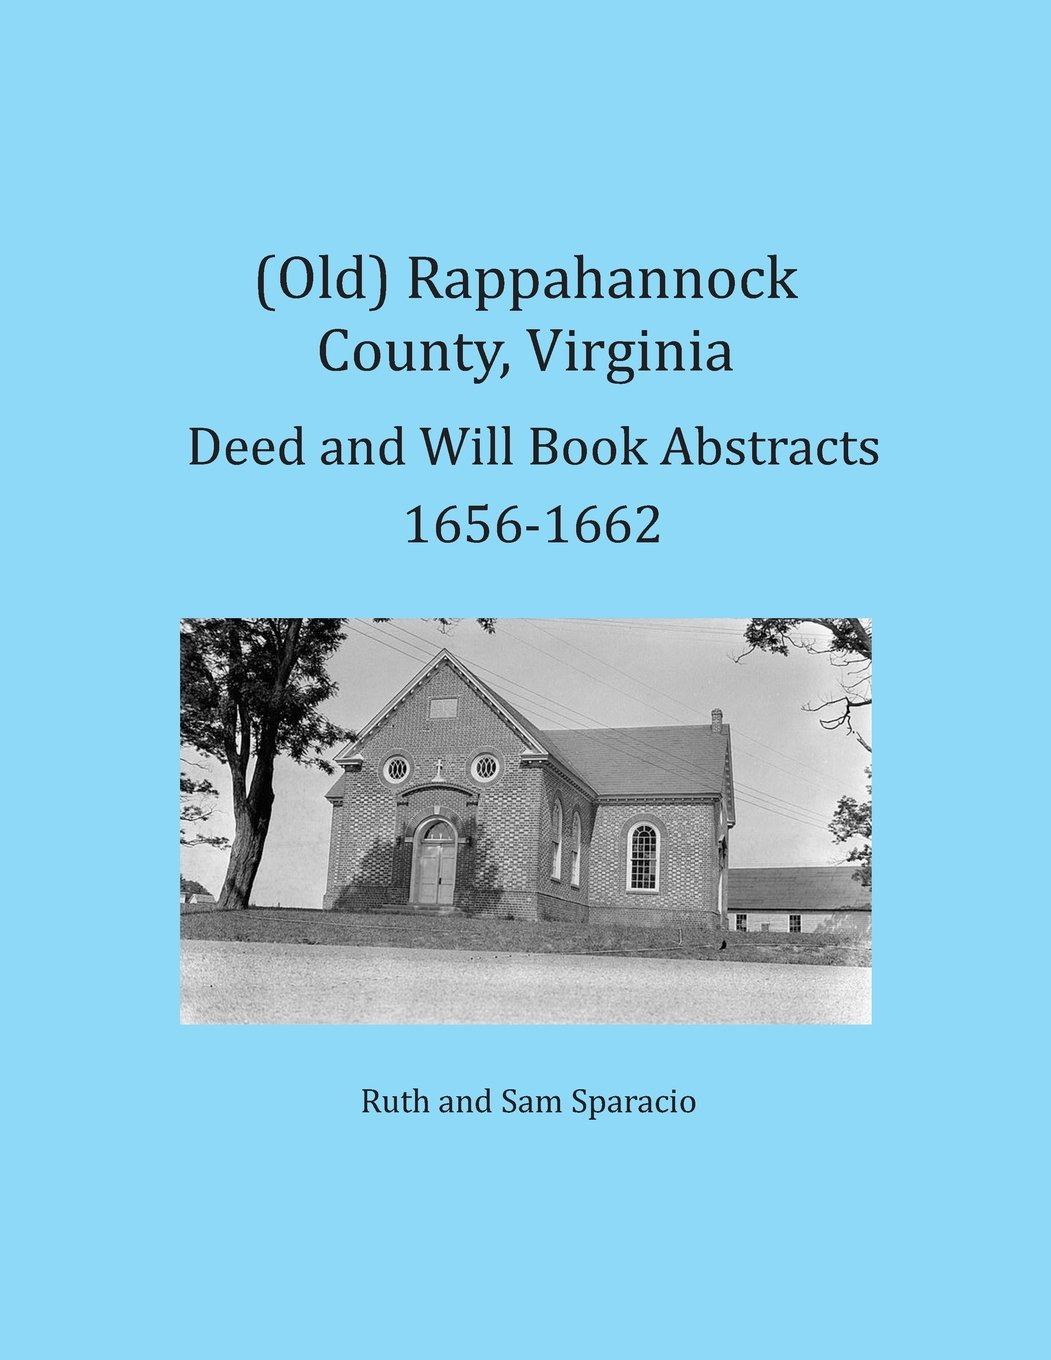 (Old) Rappahannock County, Virginia Deed and Will Book Abstracts 1656-1662